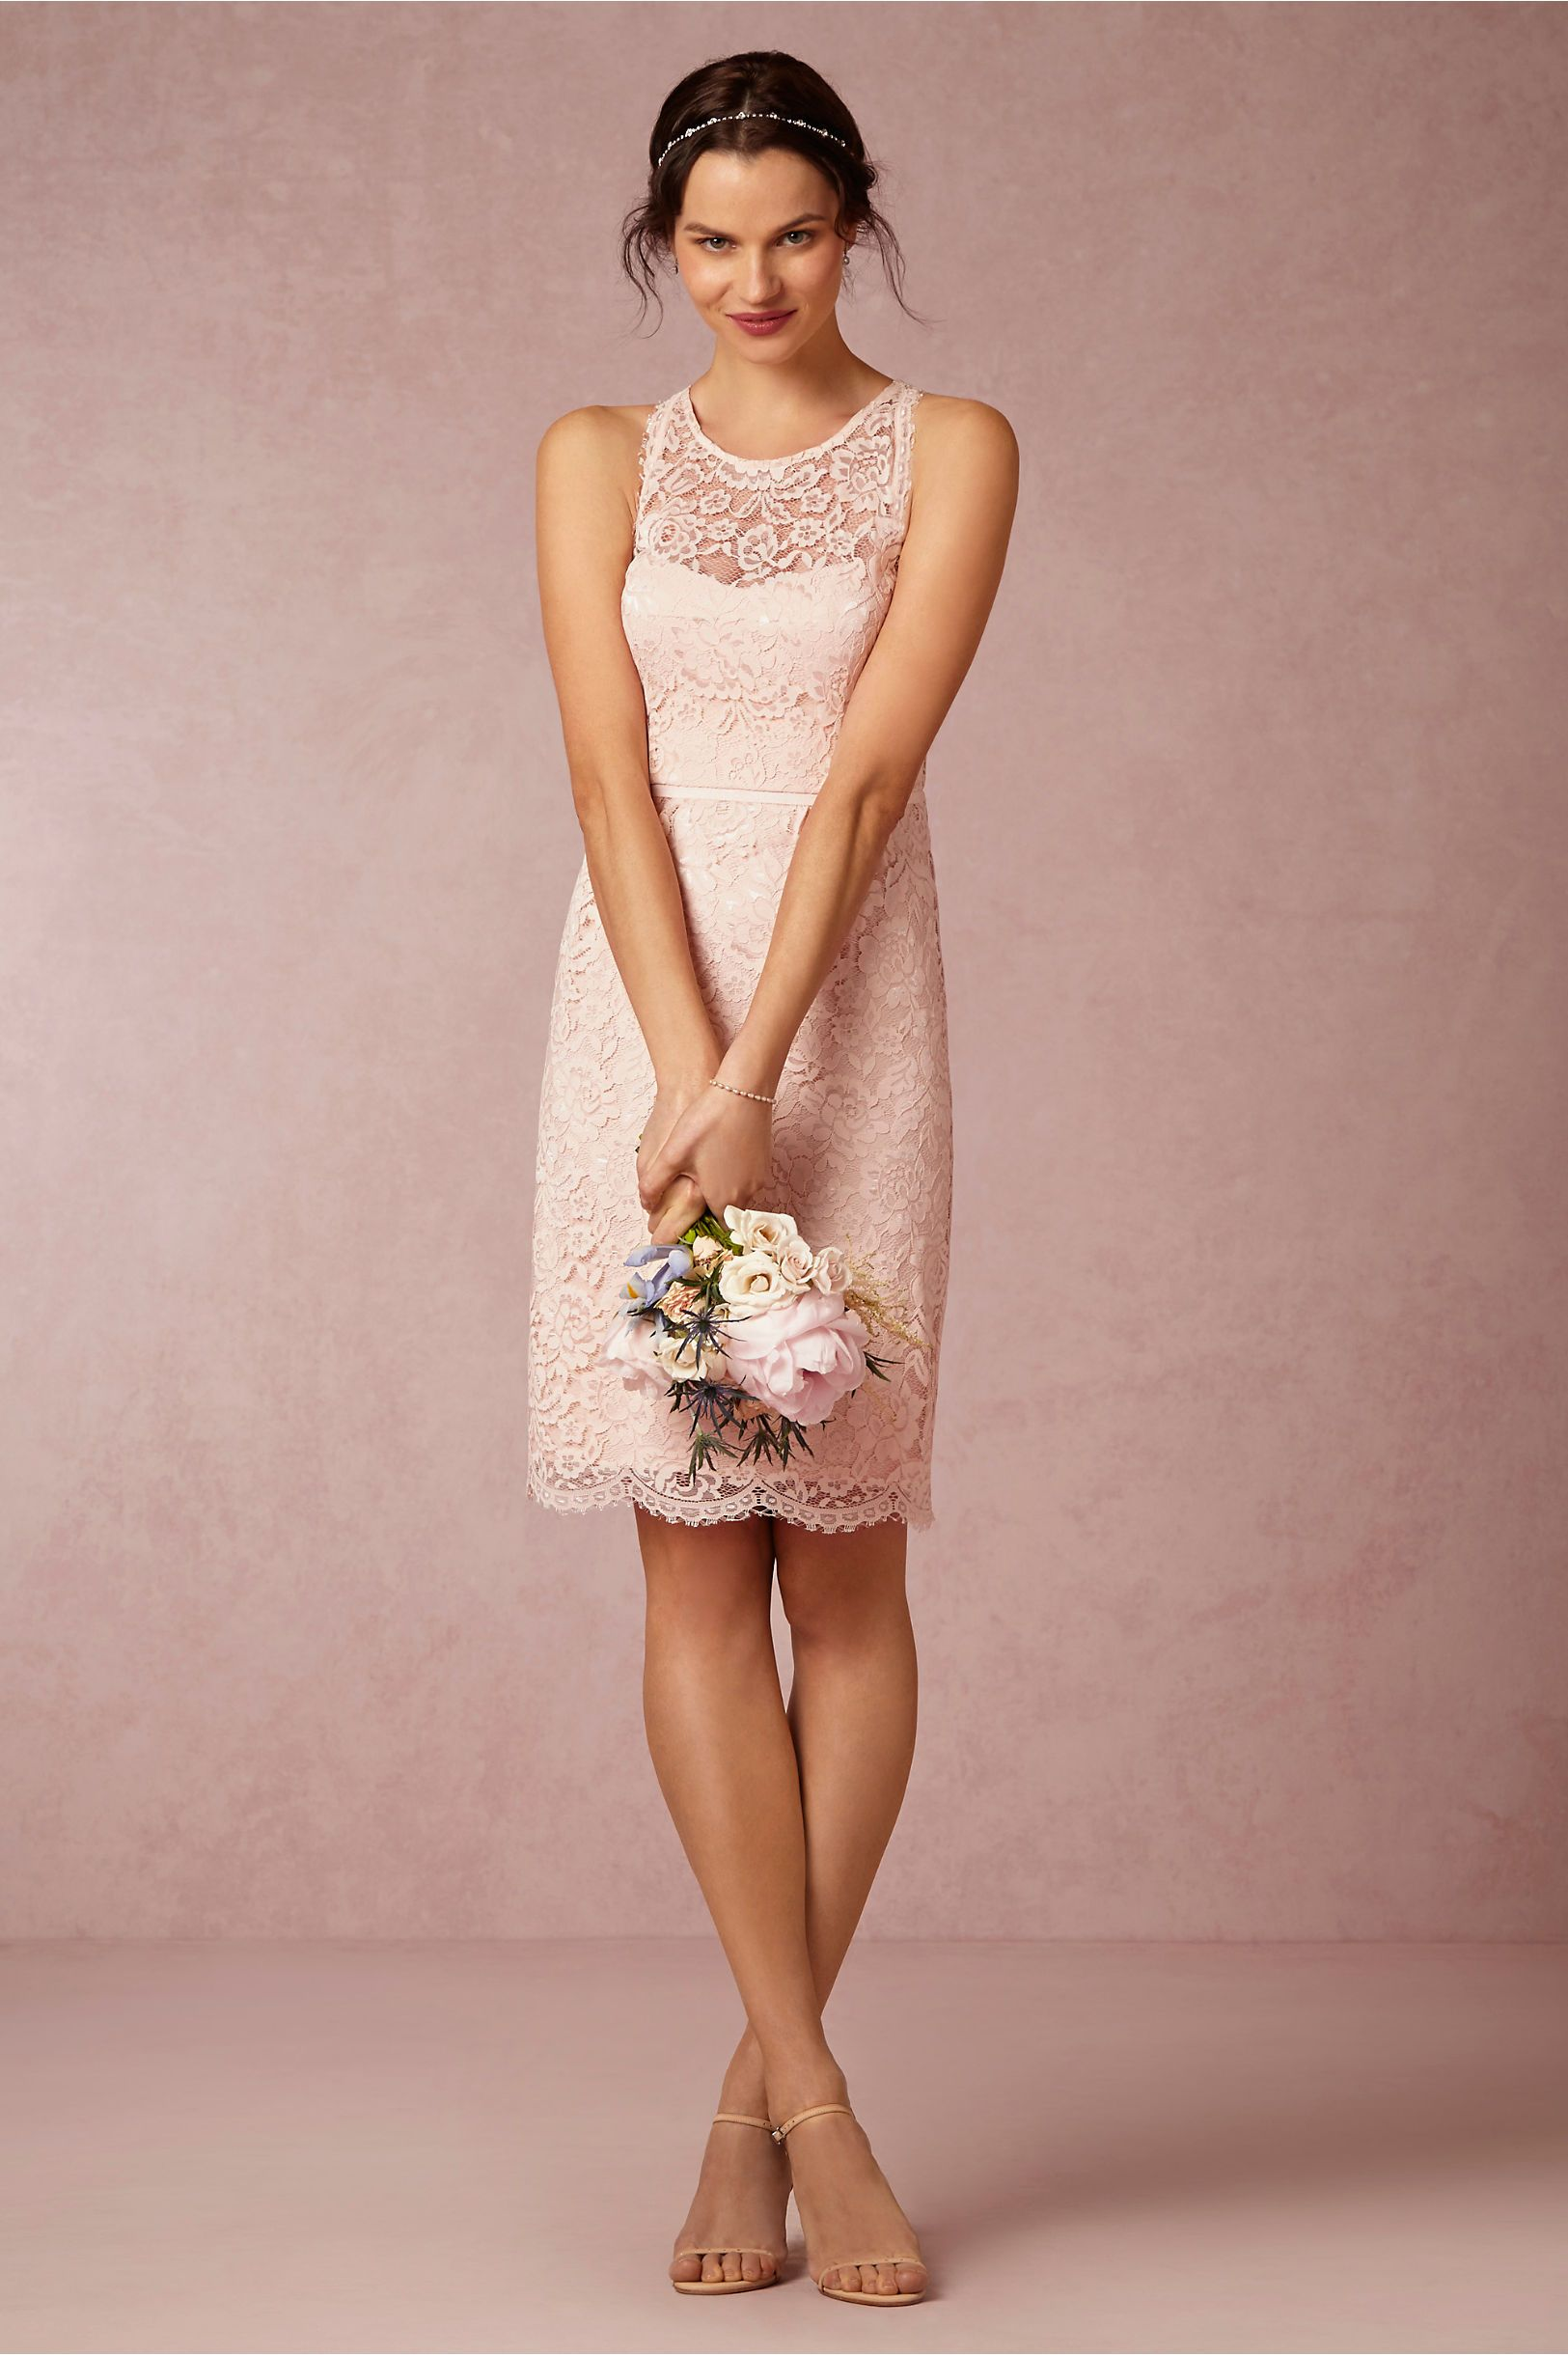 Sloane Bridesmaids Dress in blush from @BHLDN | Bridesmaid Dresses ...